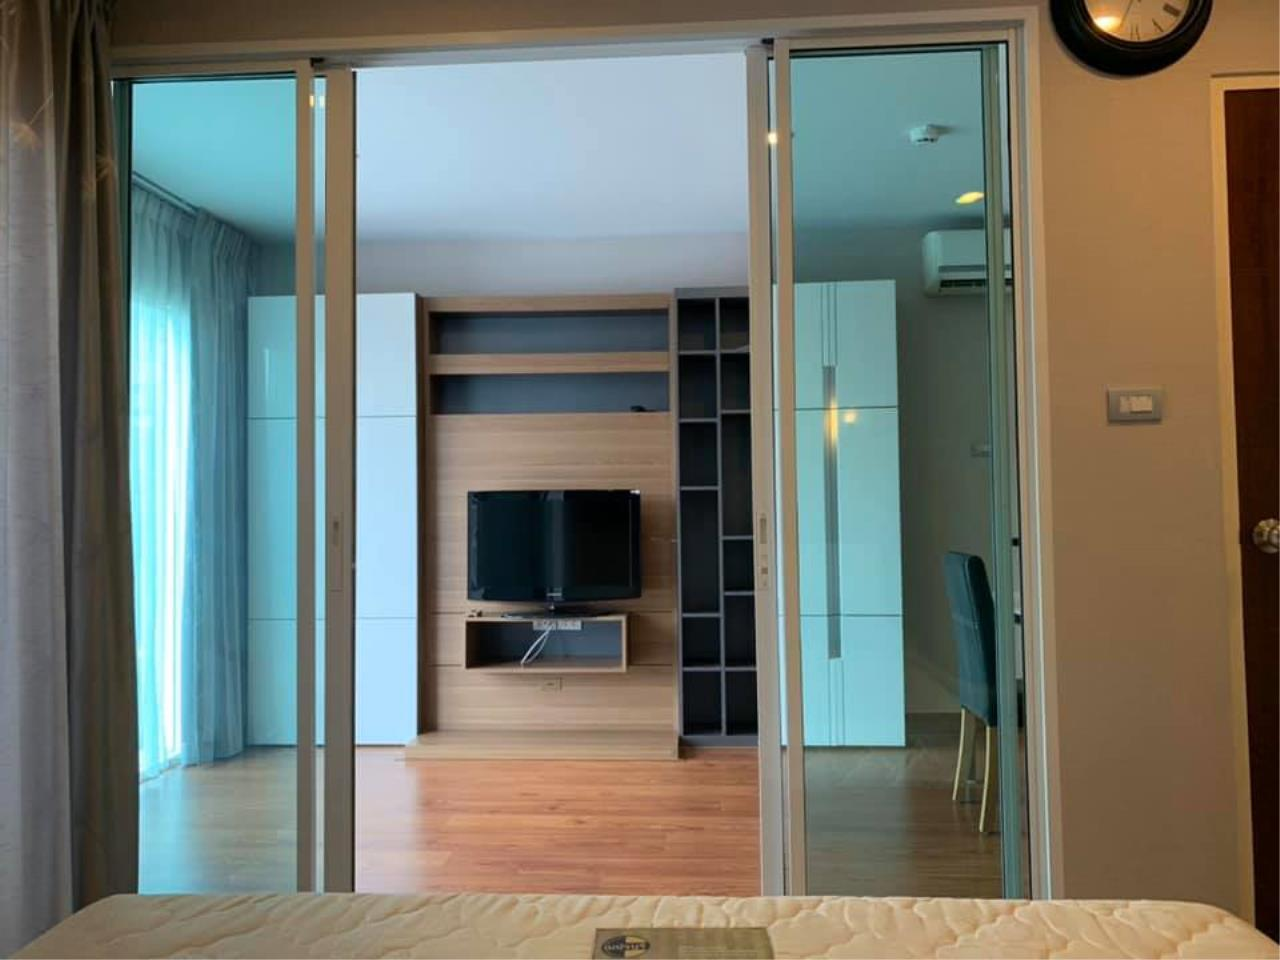 Agent Thawanrat Agency's Condo for rental TOURMALINE GOLD SATHORN – TAKSIN Near BTS.Krung Thon Buri. 1 bedroom,1 bathroom. size 40 sqm.Floor 10 th. fully furnished Ready to move in 6